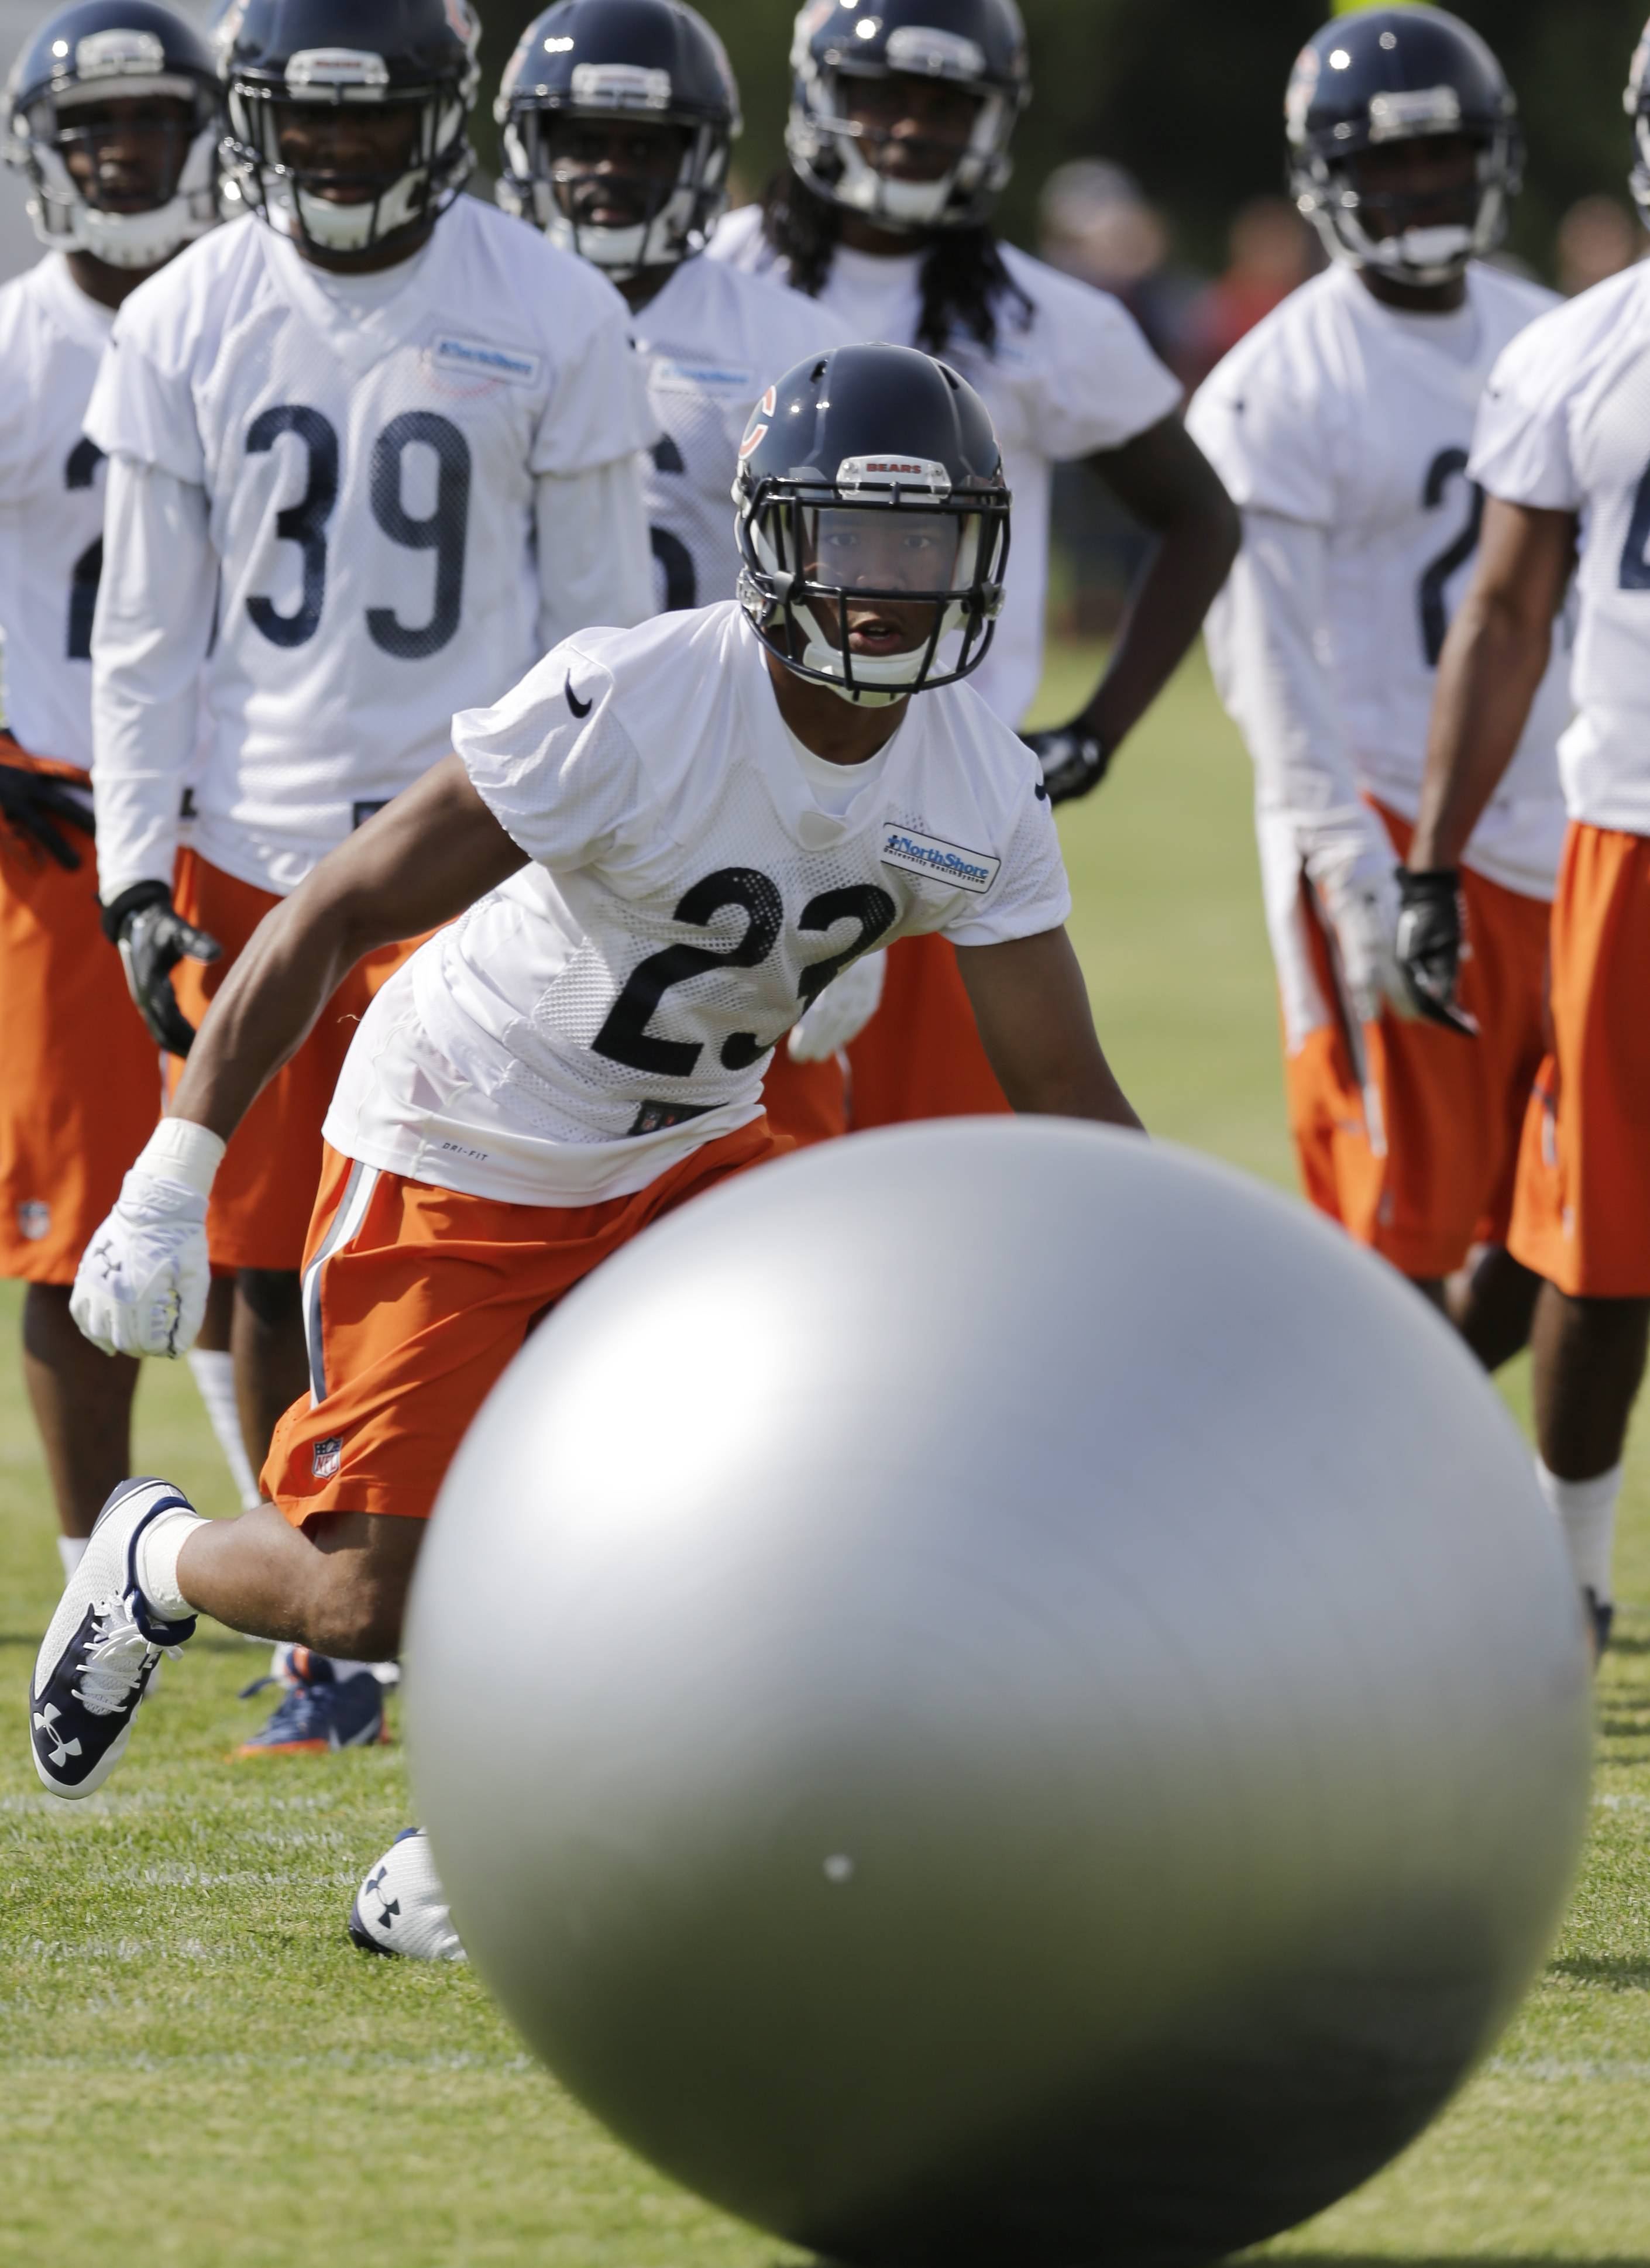 Bears cornerback Kyle Fuller (23) works with a ball as teammates look on at Olivet Nazarene University on Friday. Fuller, the Bears' first-round selection in May, picked off the first pass of 11-on-11 drills and added another pick later in practice.